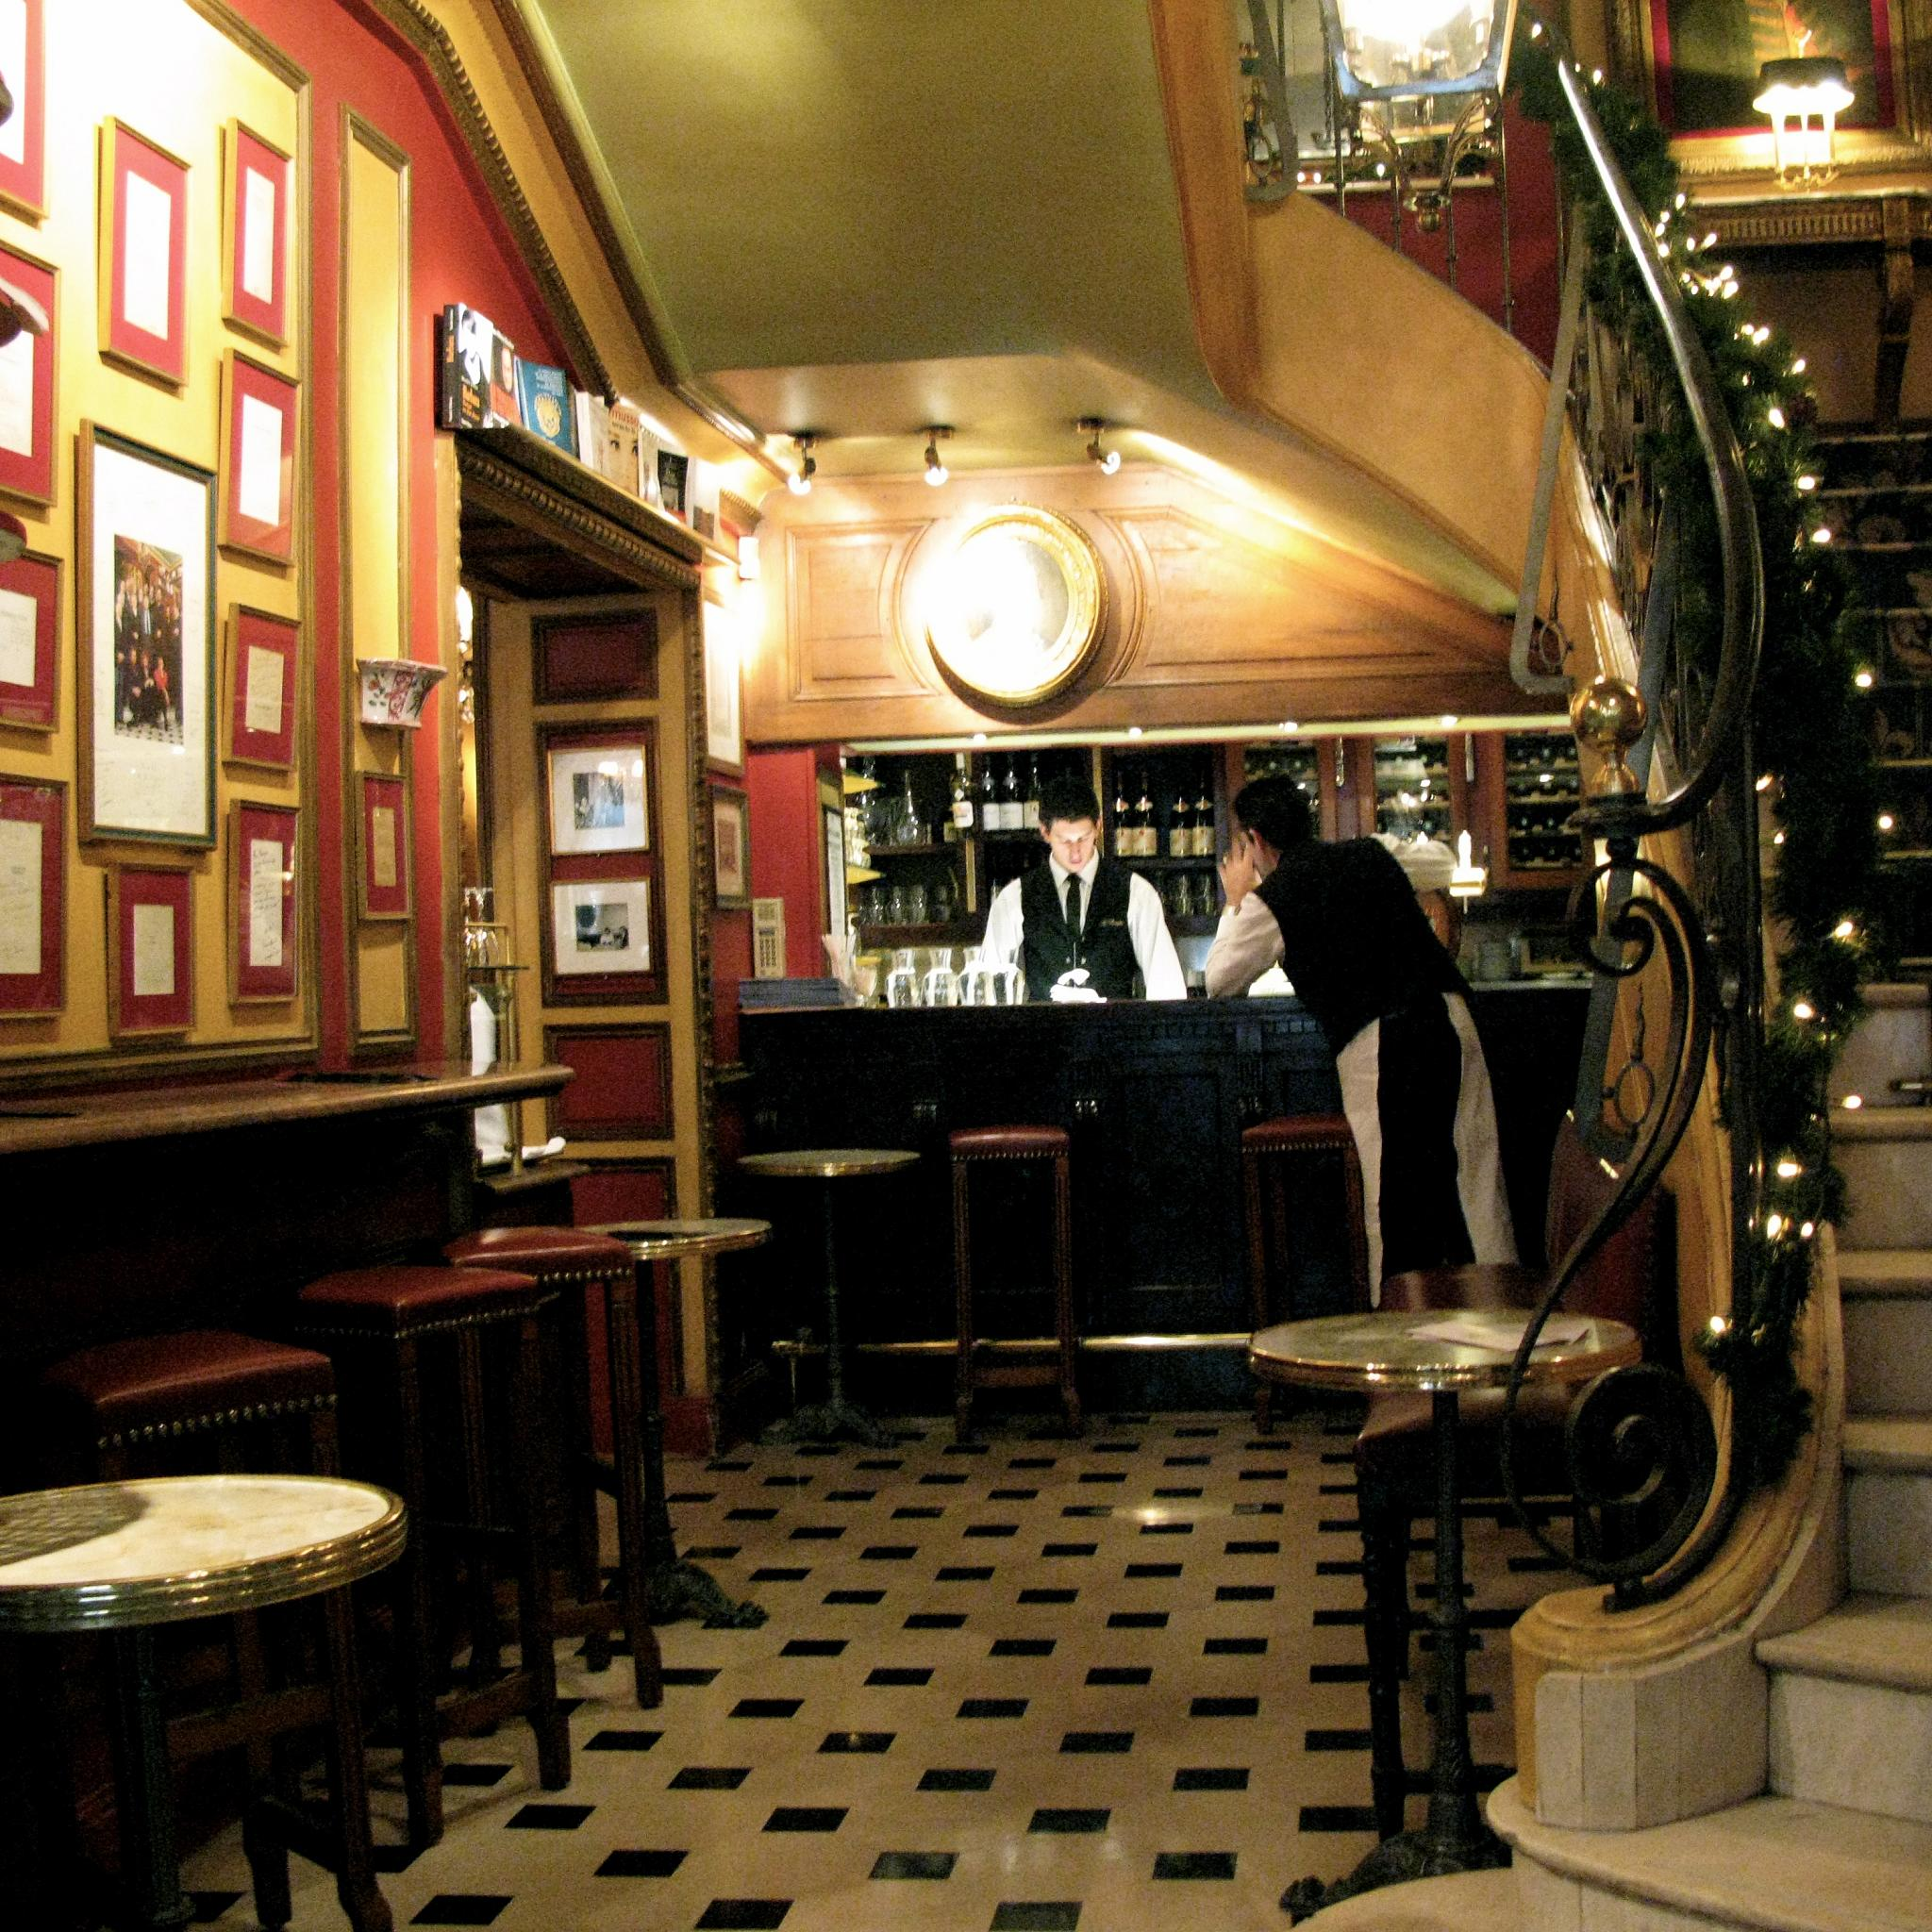 File:Cafe Procope bar.jpg - Wikimedia Commons